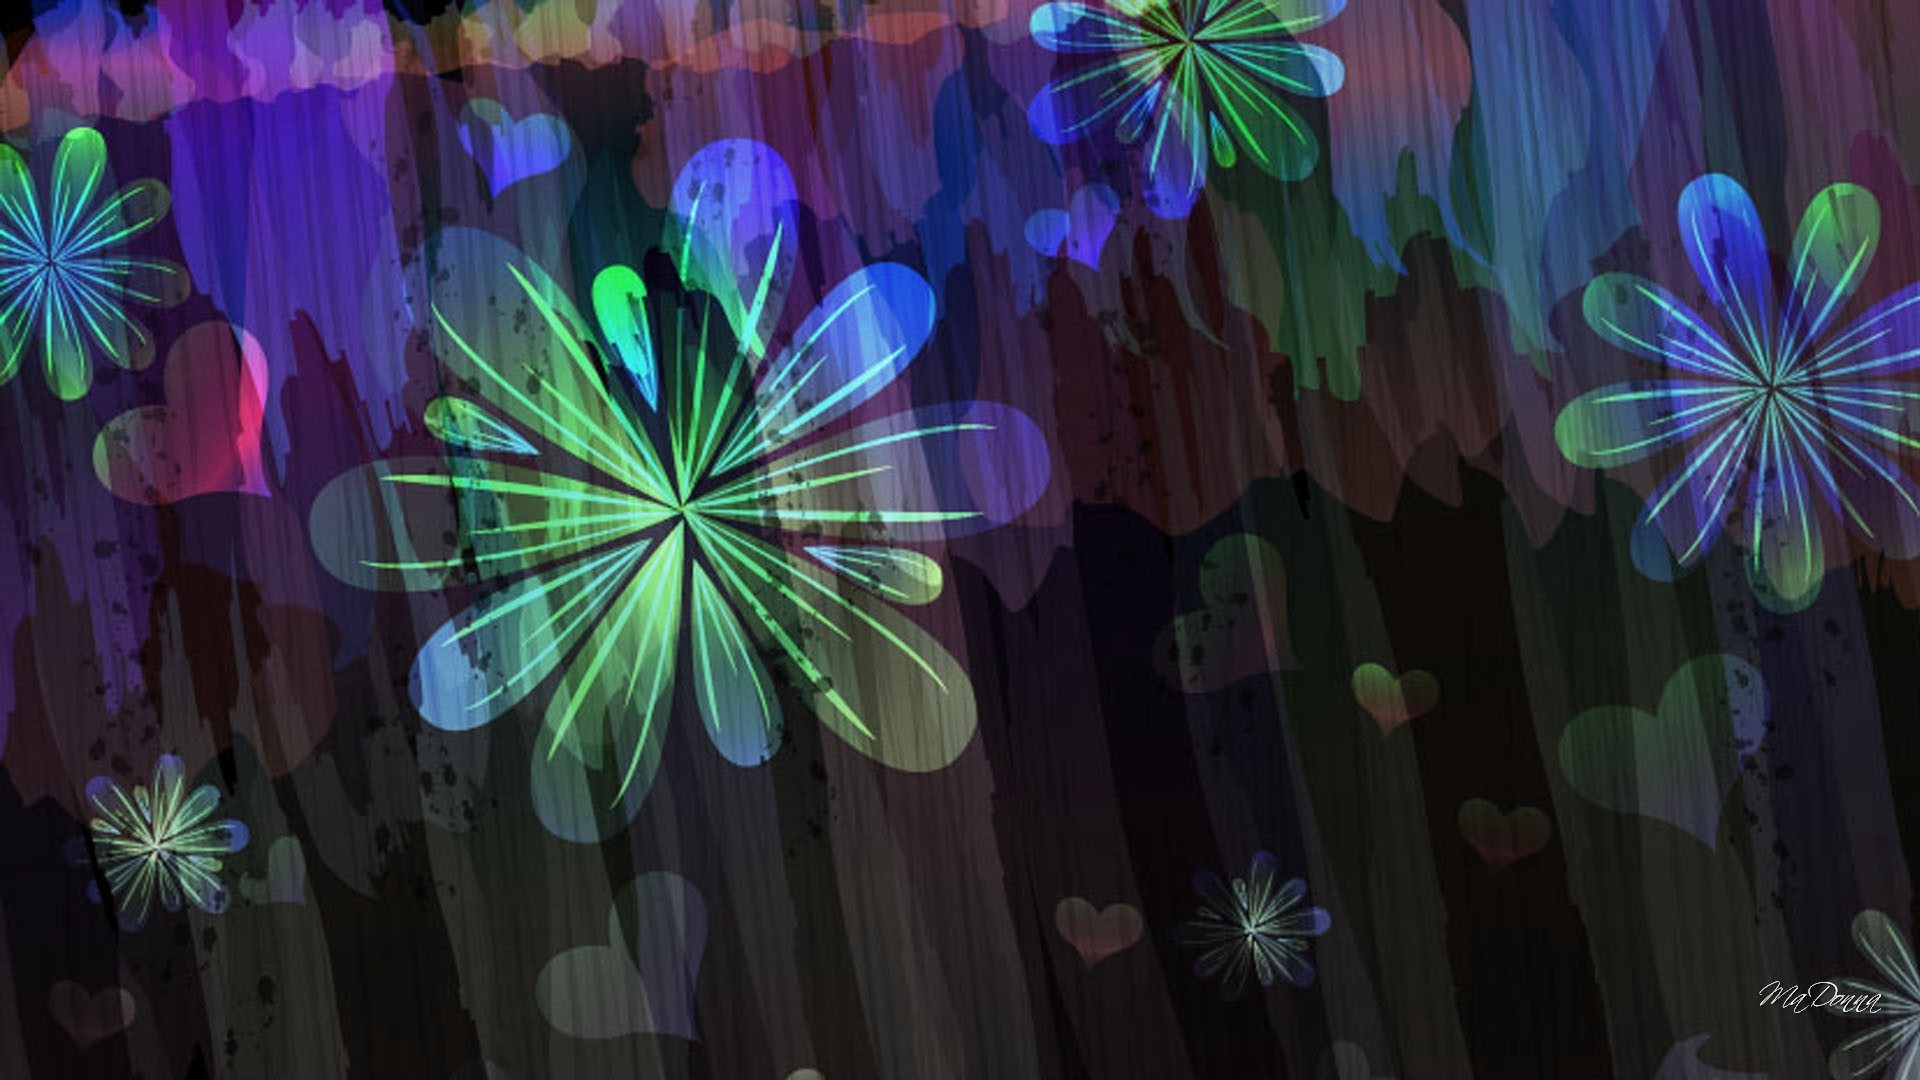 Free Download Hearts Abstract Flower Flowers Summer Dark Floral